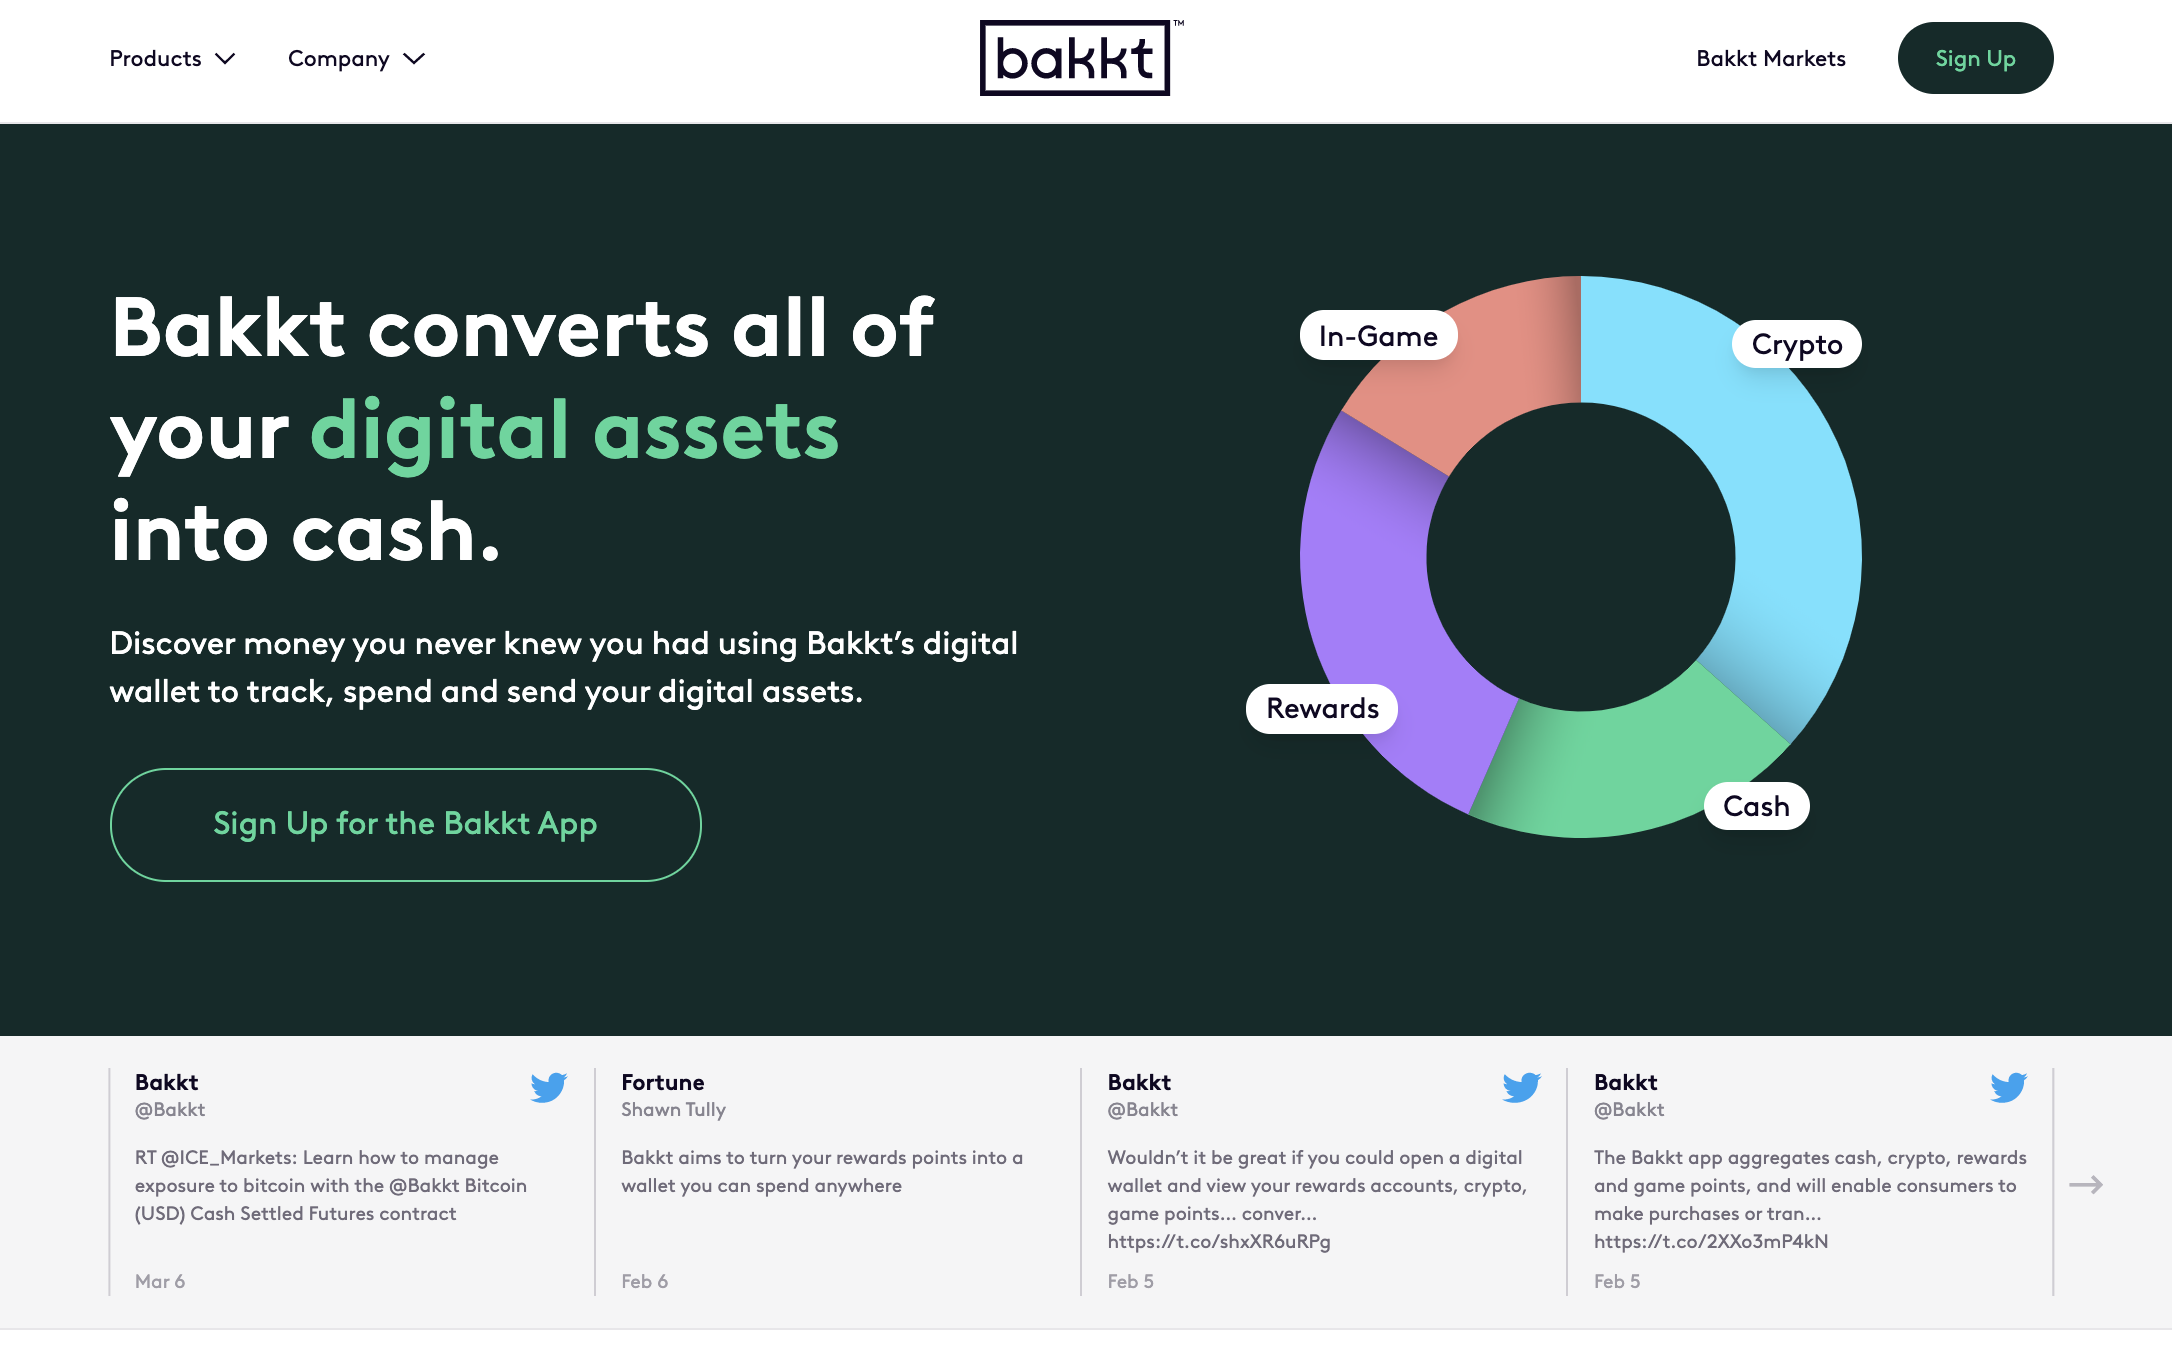 Homepage of the new Bakkt website